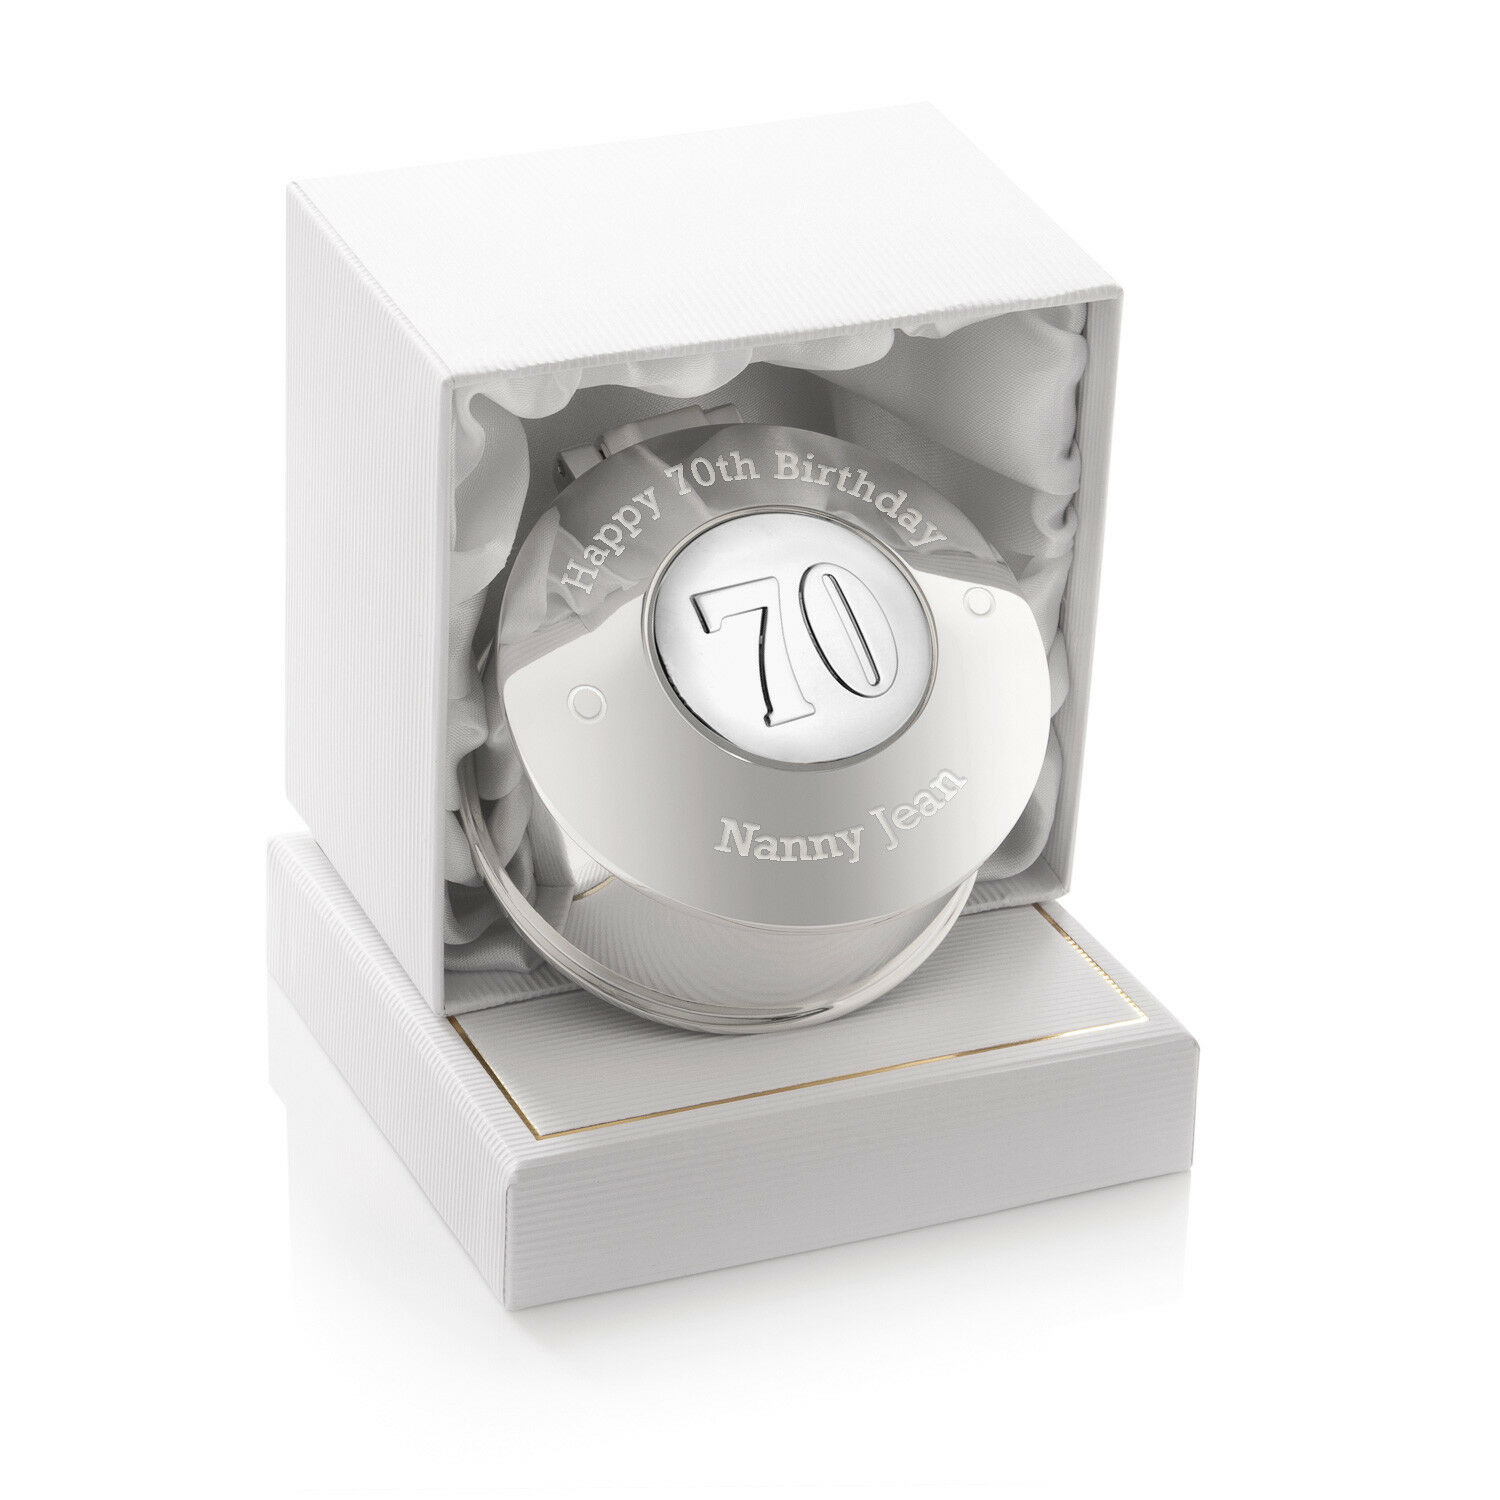 Details About Girls 70th Birthday Gift Engraved Small Trinket Box Seventieth Seventy 70 Gifts